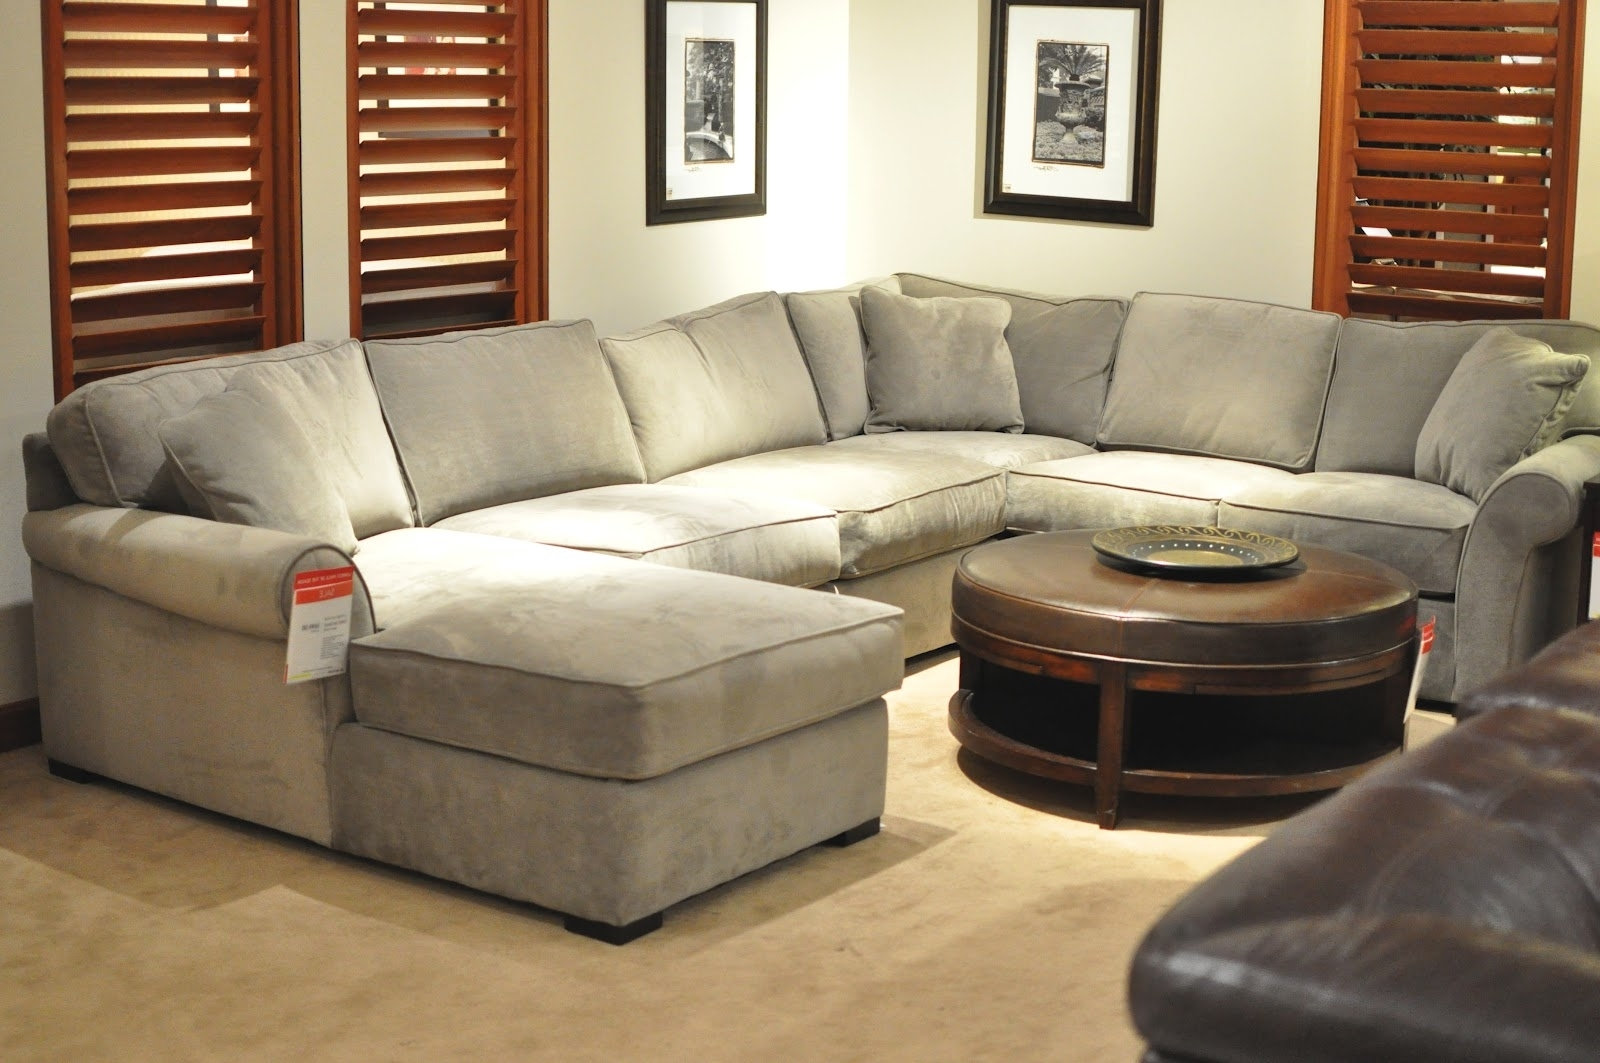 Newest Not So Newlywed Mcgees: Shopping For A Sectional Inside Phoenix Sectional Sofas (View 11 of 20)